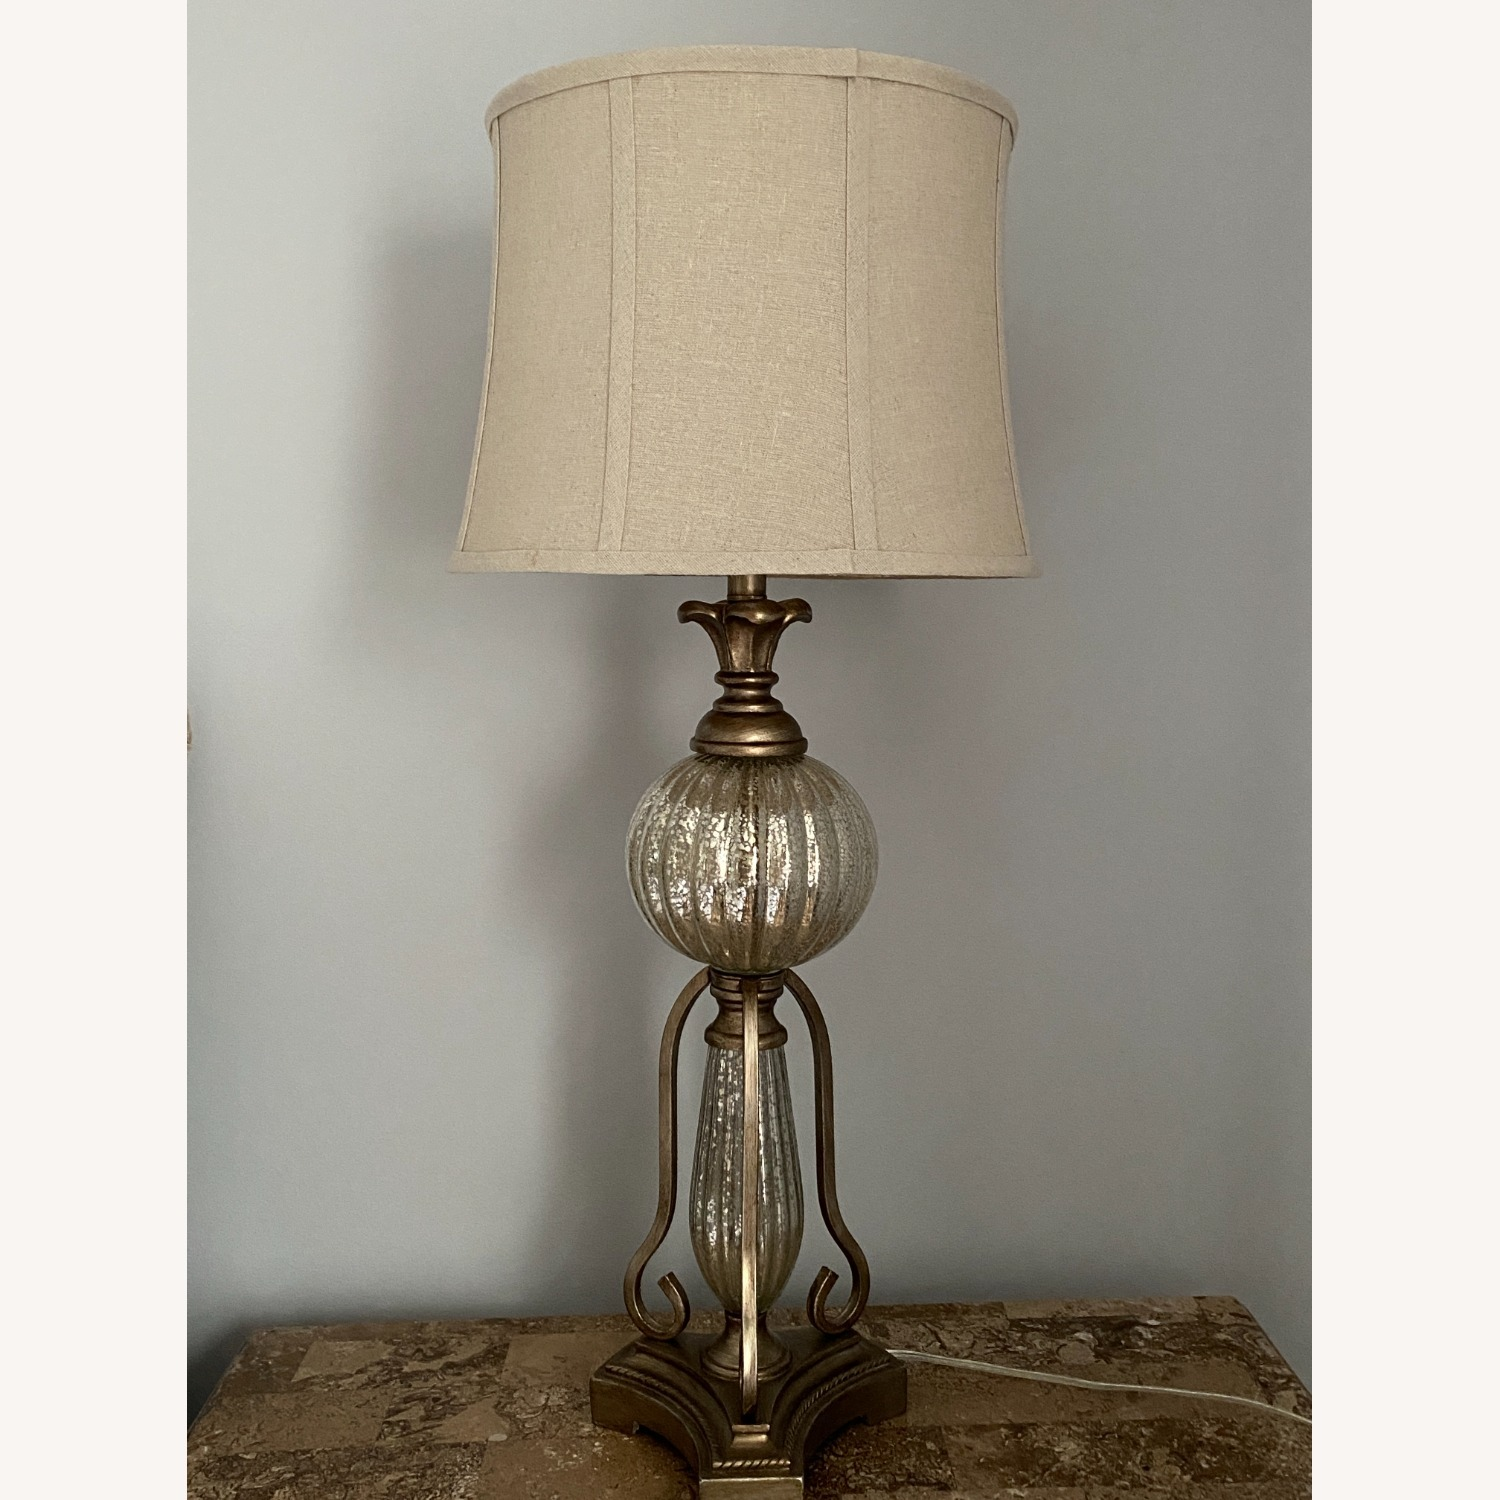 Decorative Table Lamps - image-1